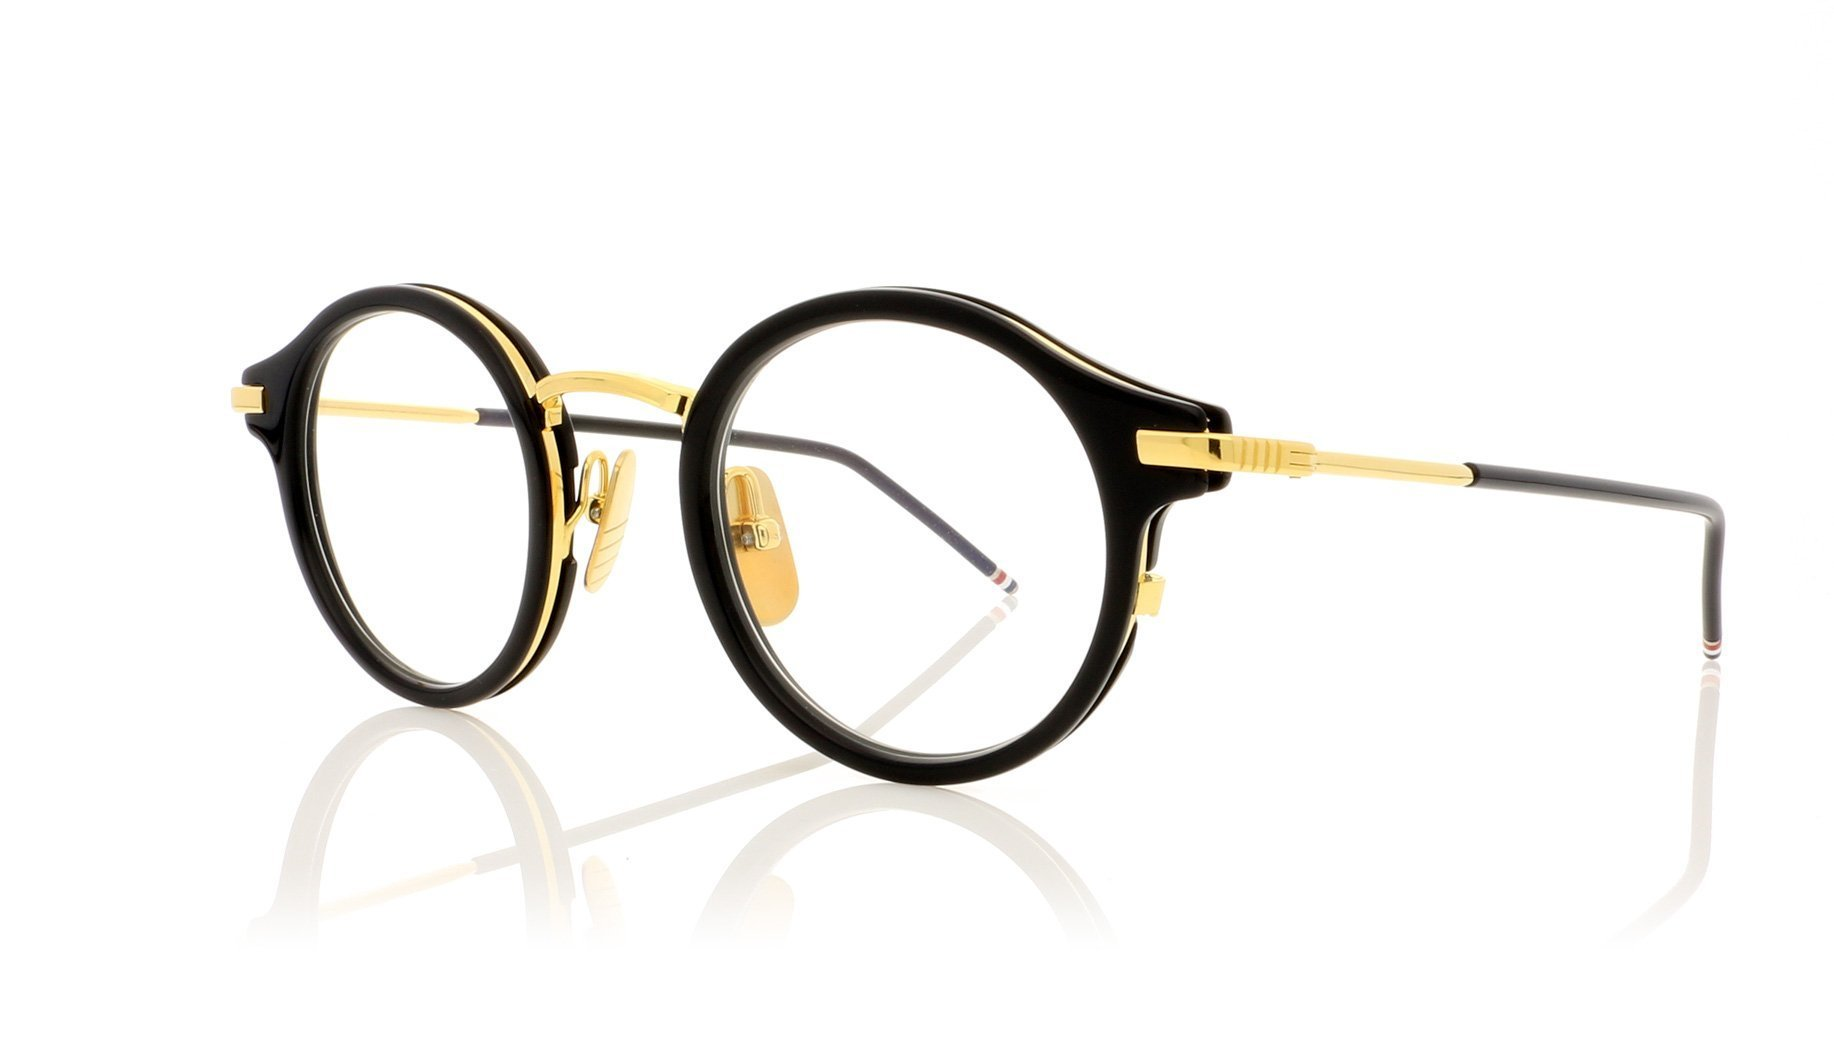 Authentic Thom Browne 807 D-T-NVY-GLD Sunglasses Navy 18kt Gold//Brown *NEW* 45mm